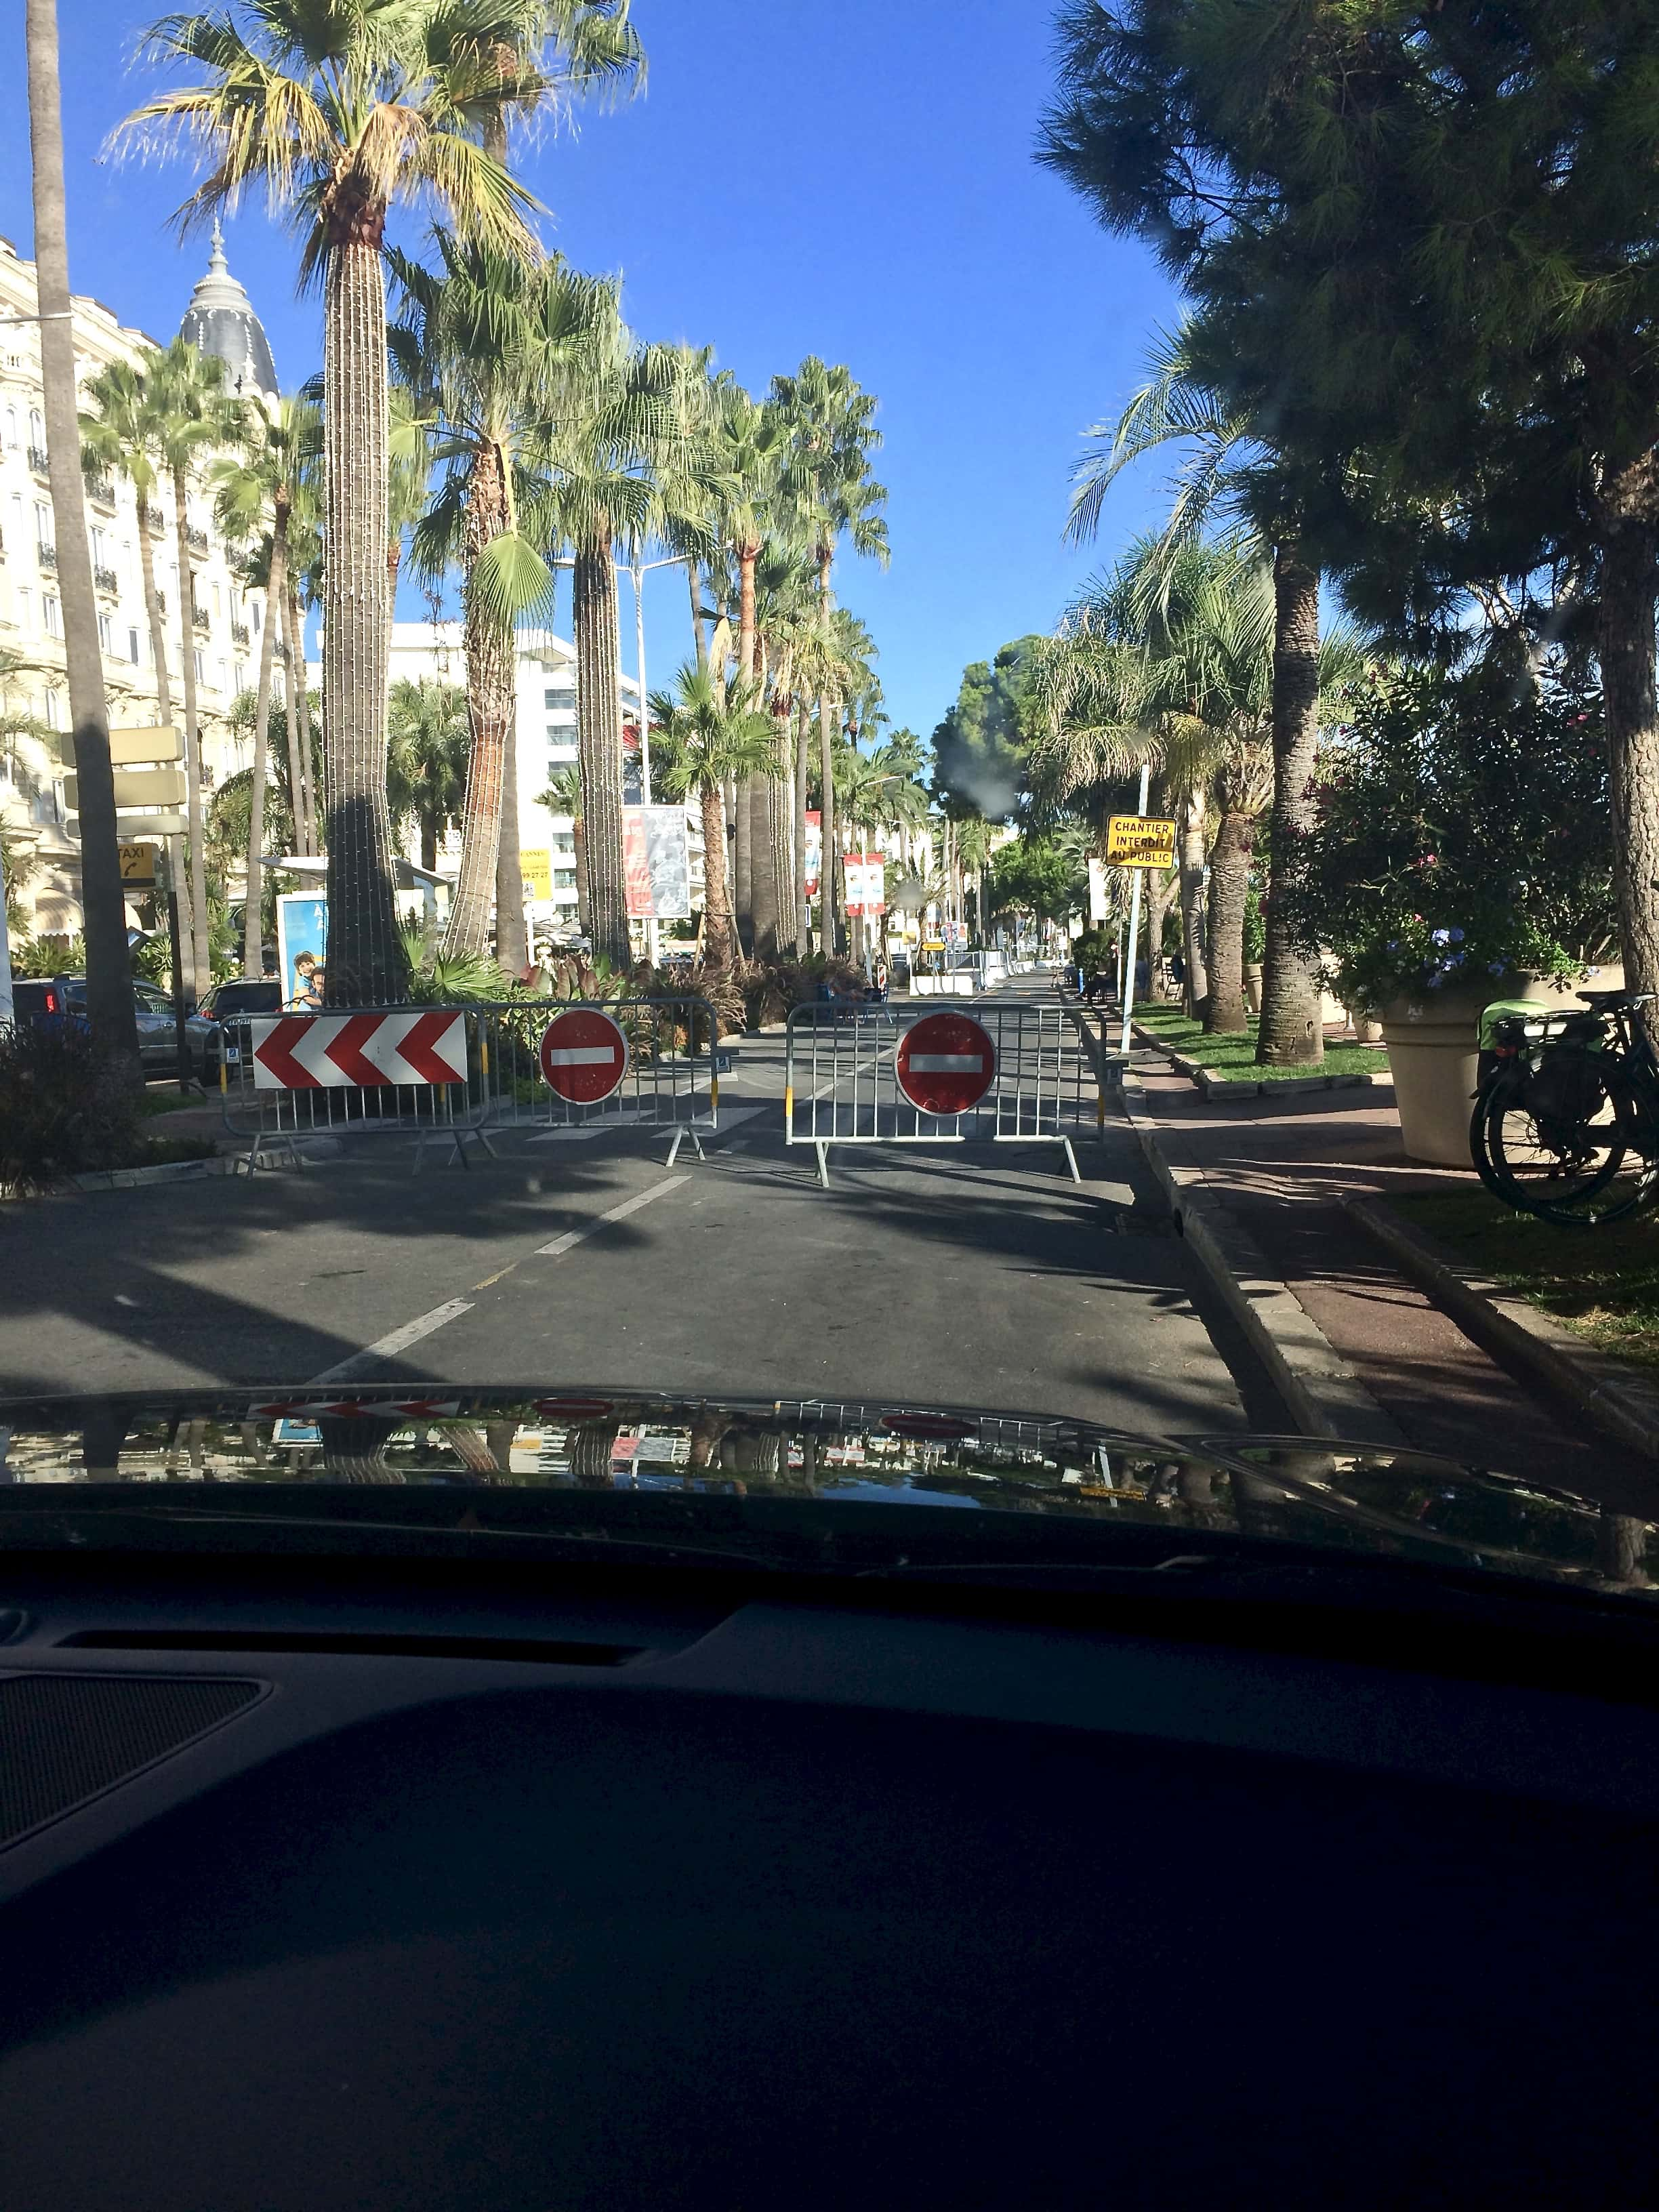 Parking in Cannes… - When all else fails, park illegally and look important !